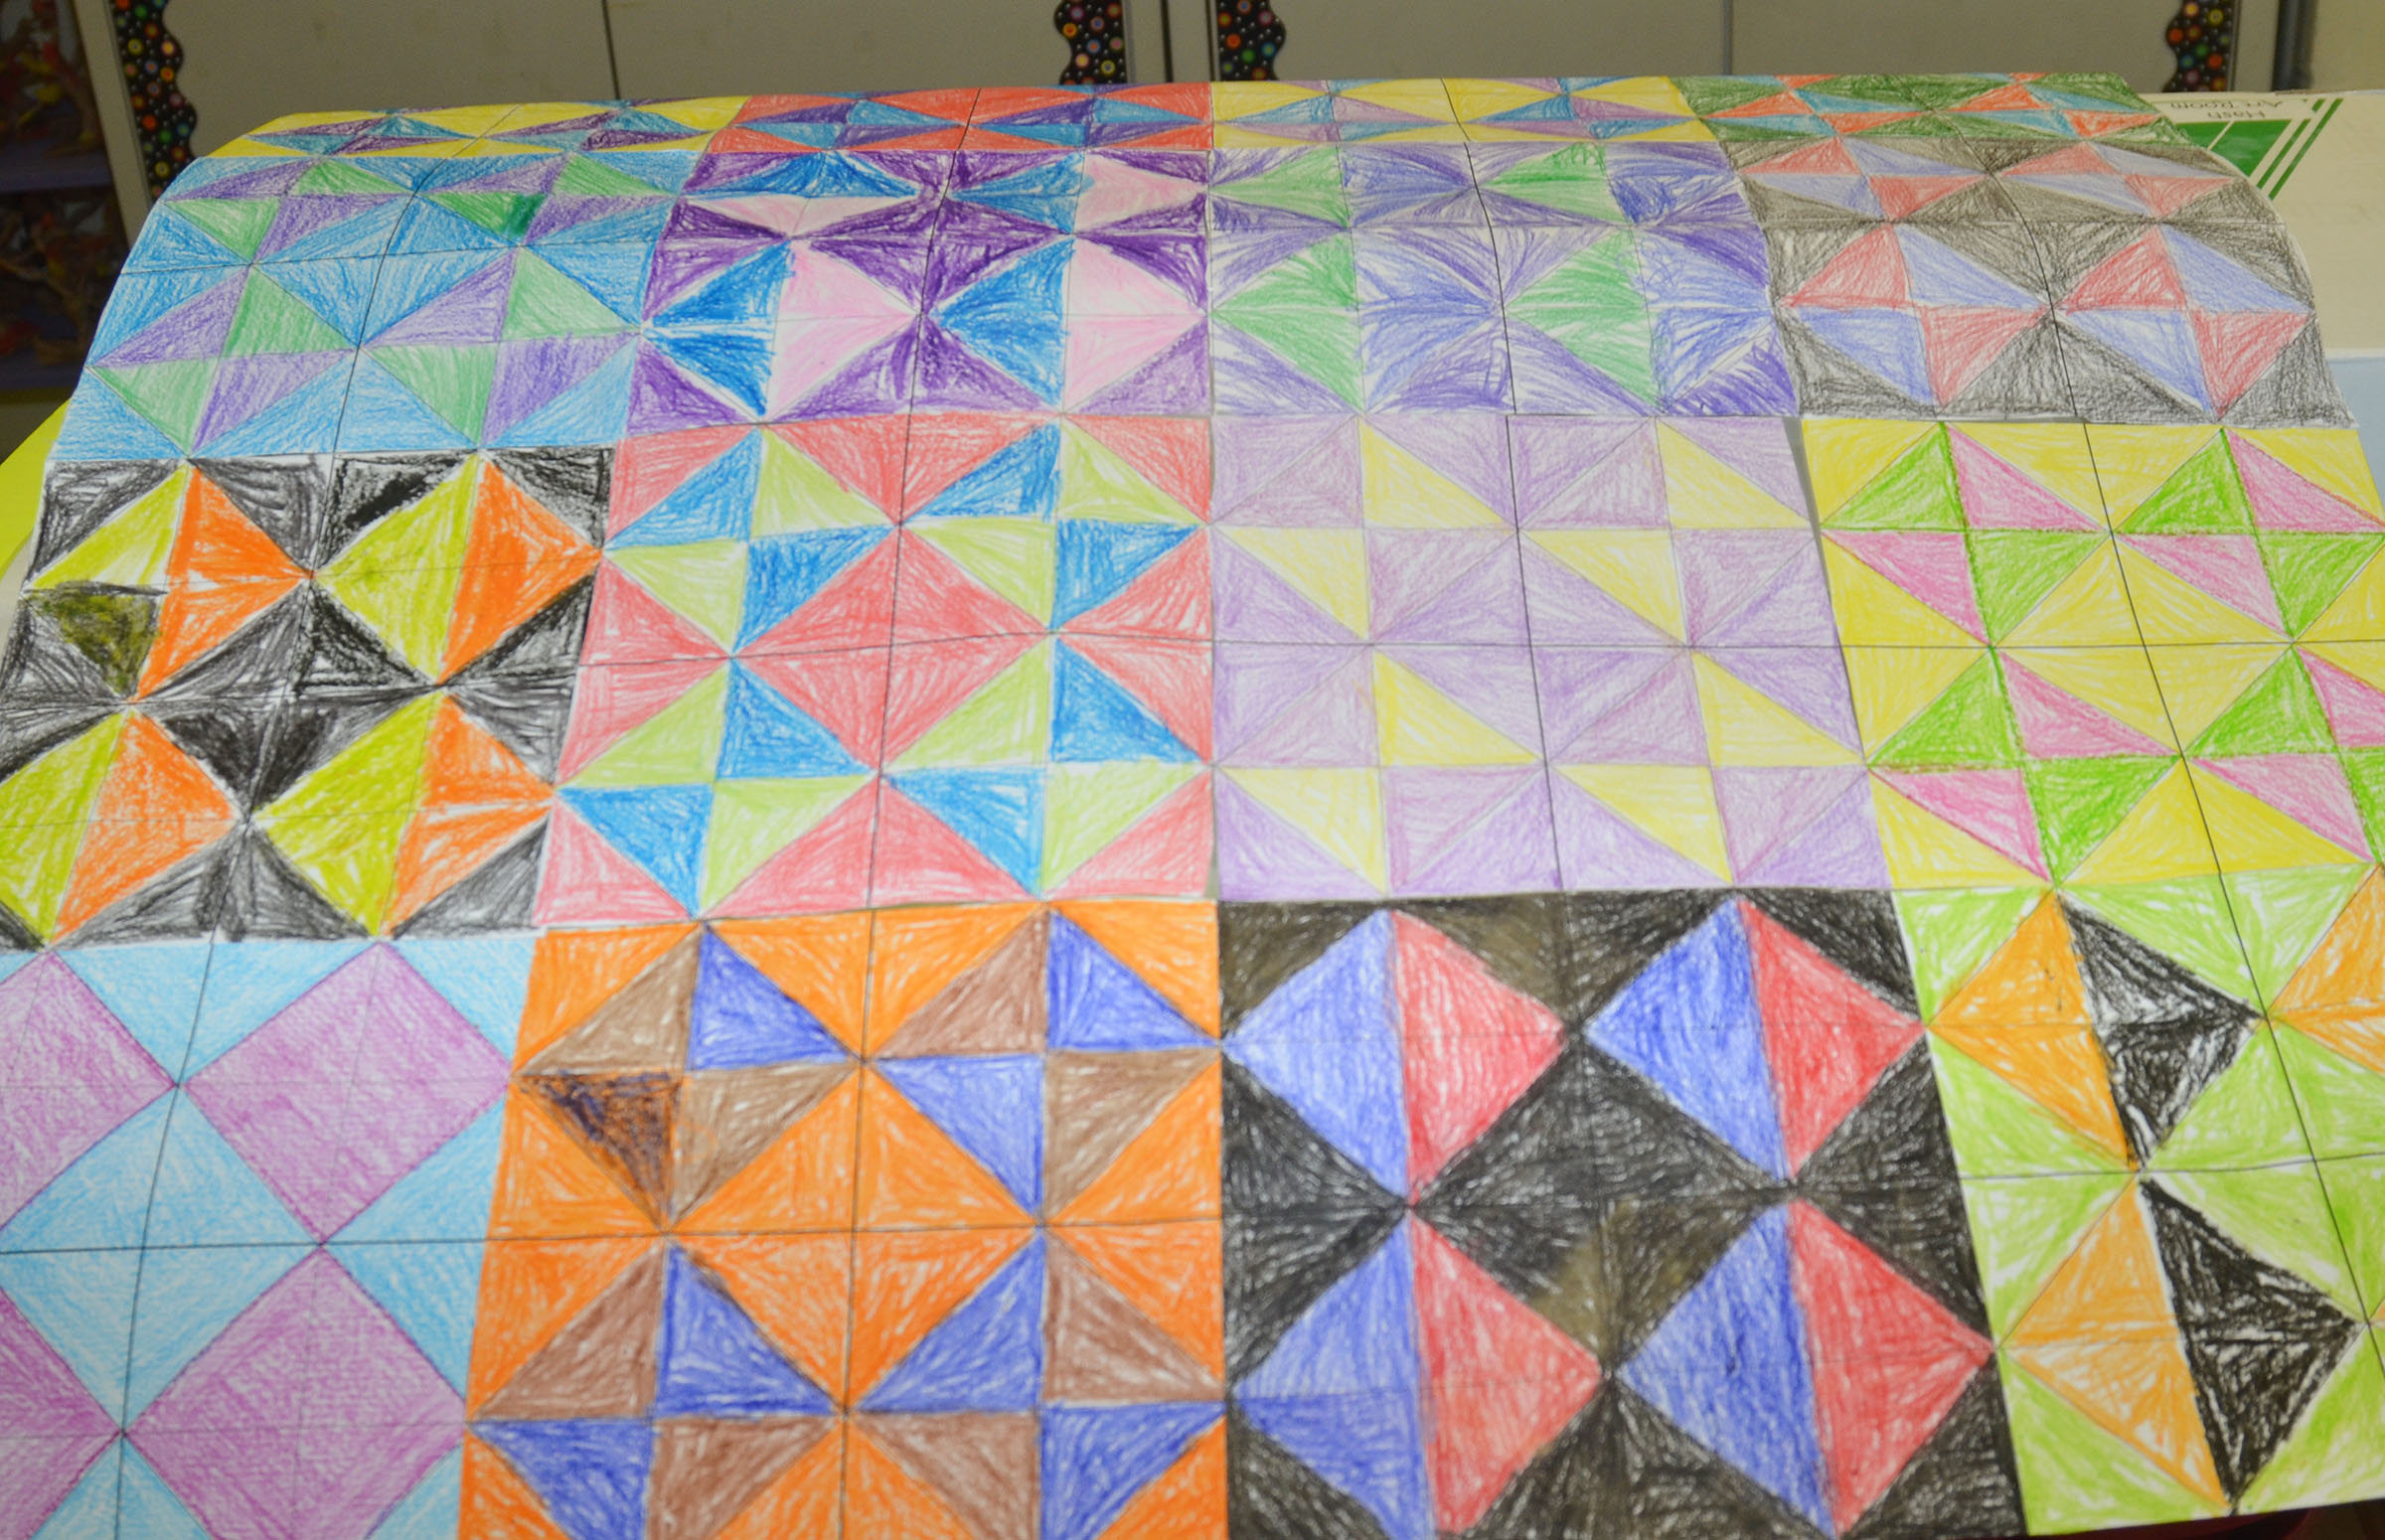 When finished, students' squares will be glued together to make a class quilt.